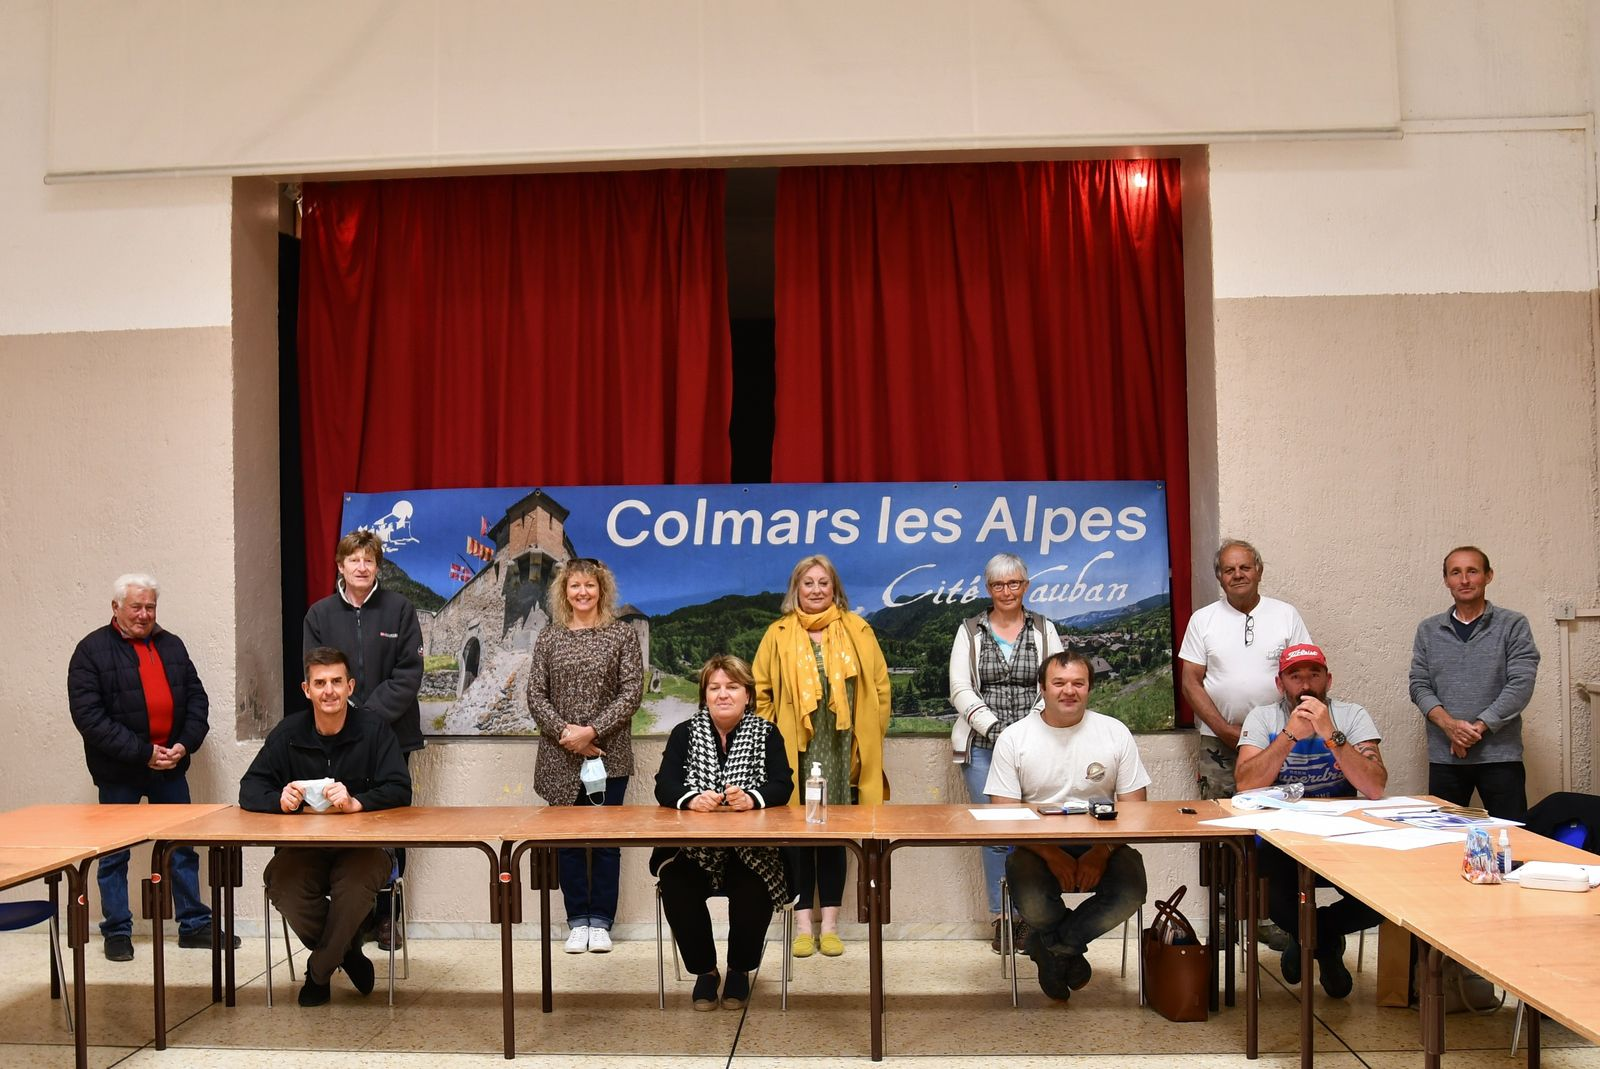 Colmars les Alpes, Election du maire